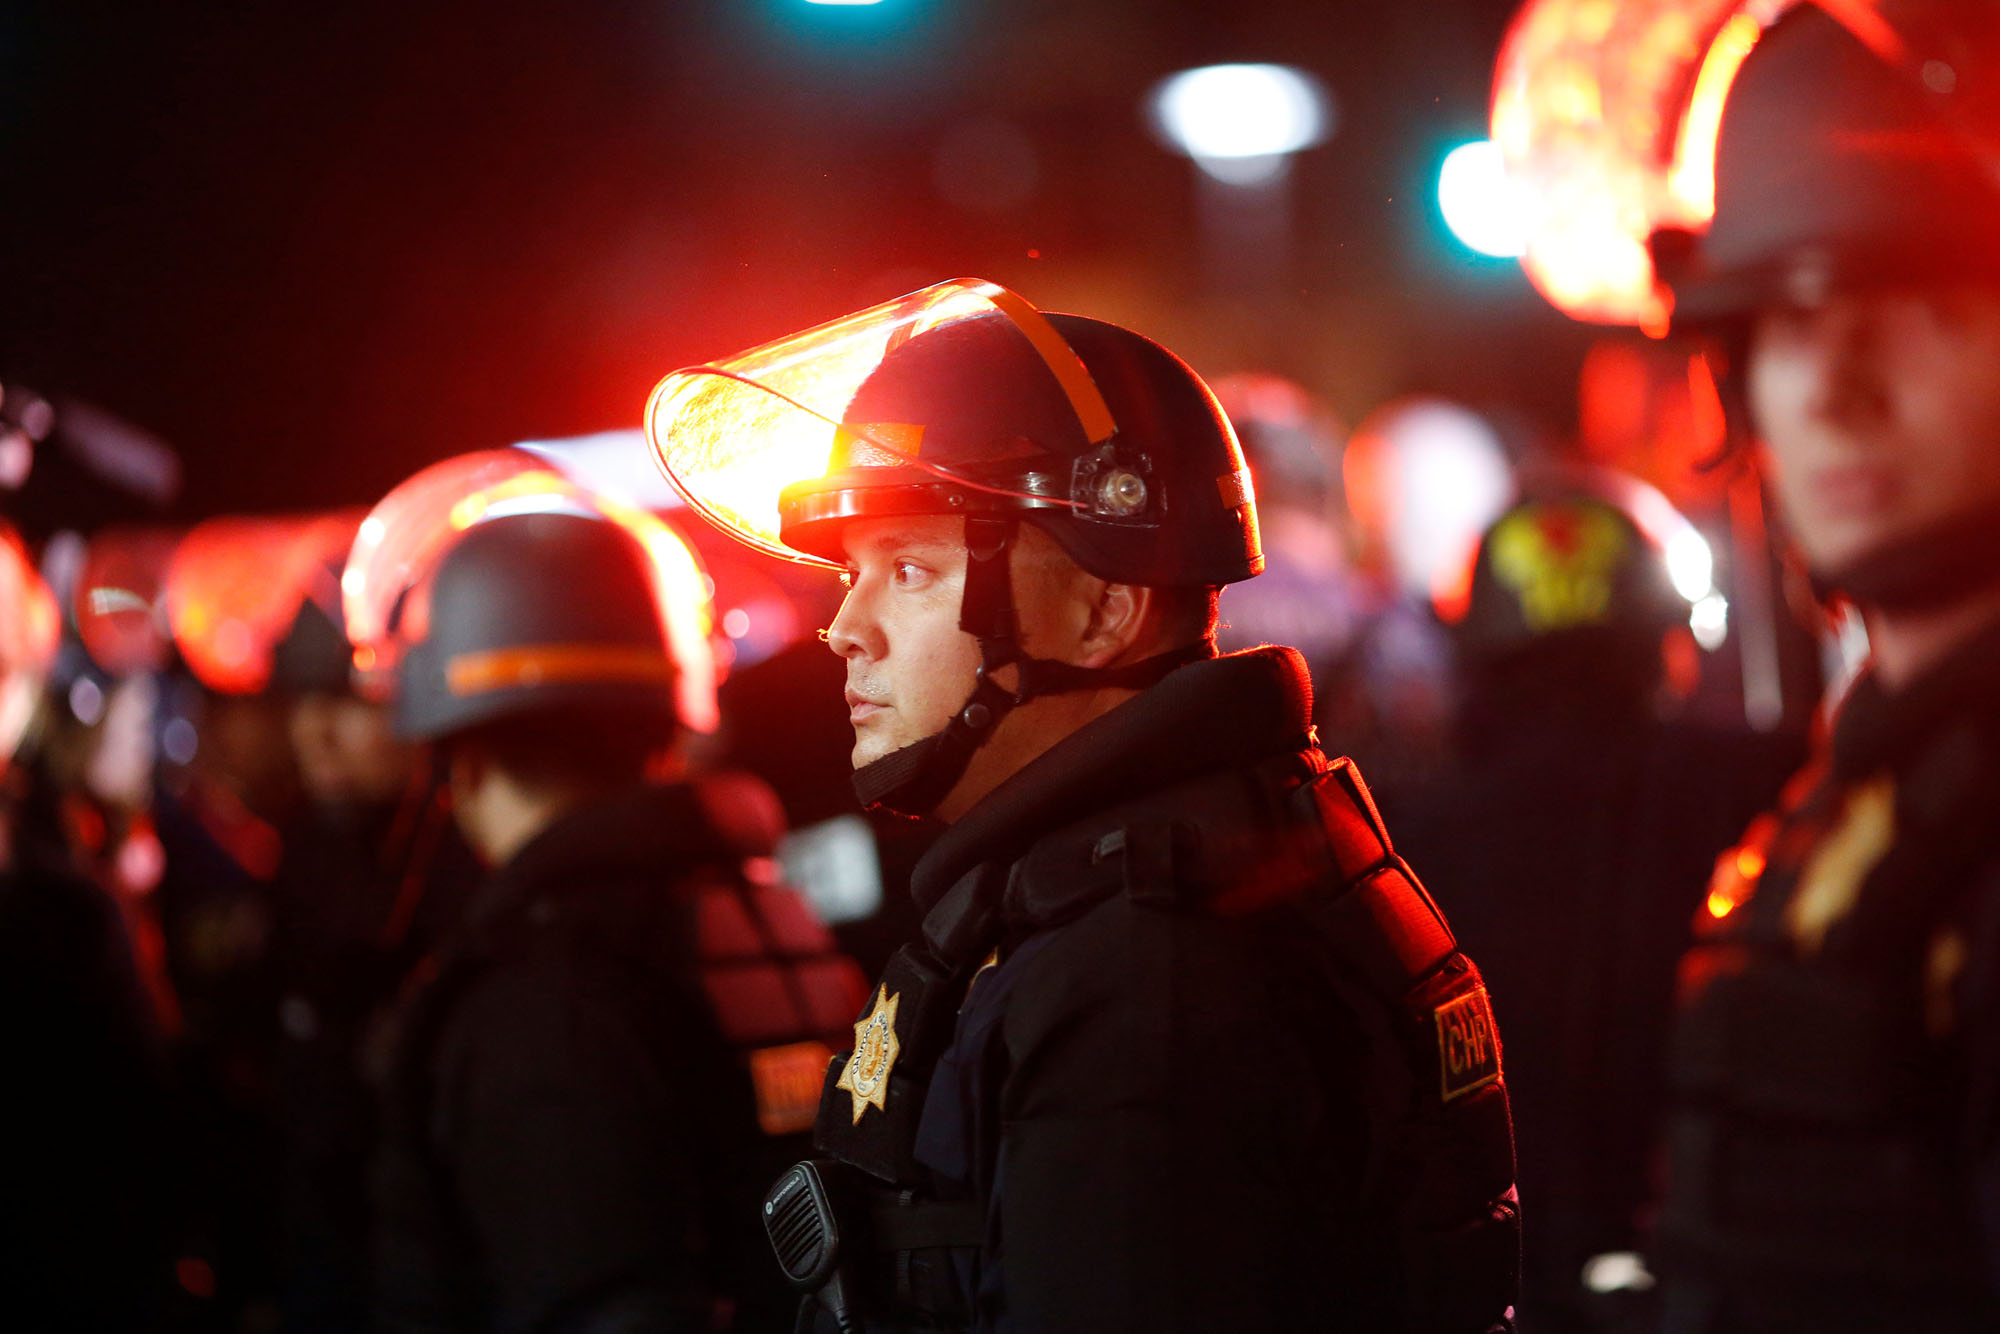 Police officers stand in a line as others render aid to an injured woman during a protest against a speech by conservative political commentator Ben Shapiro at UC Berkeley in Berkeley, California, on Sept. 14. Security for the event cost an estimated $600,000. | REUTERS